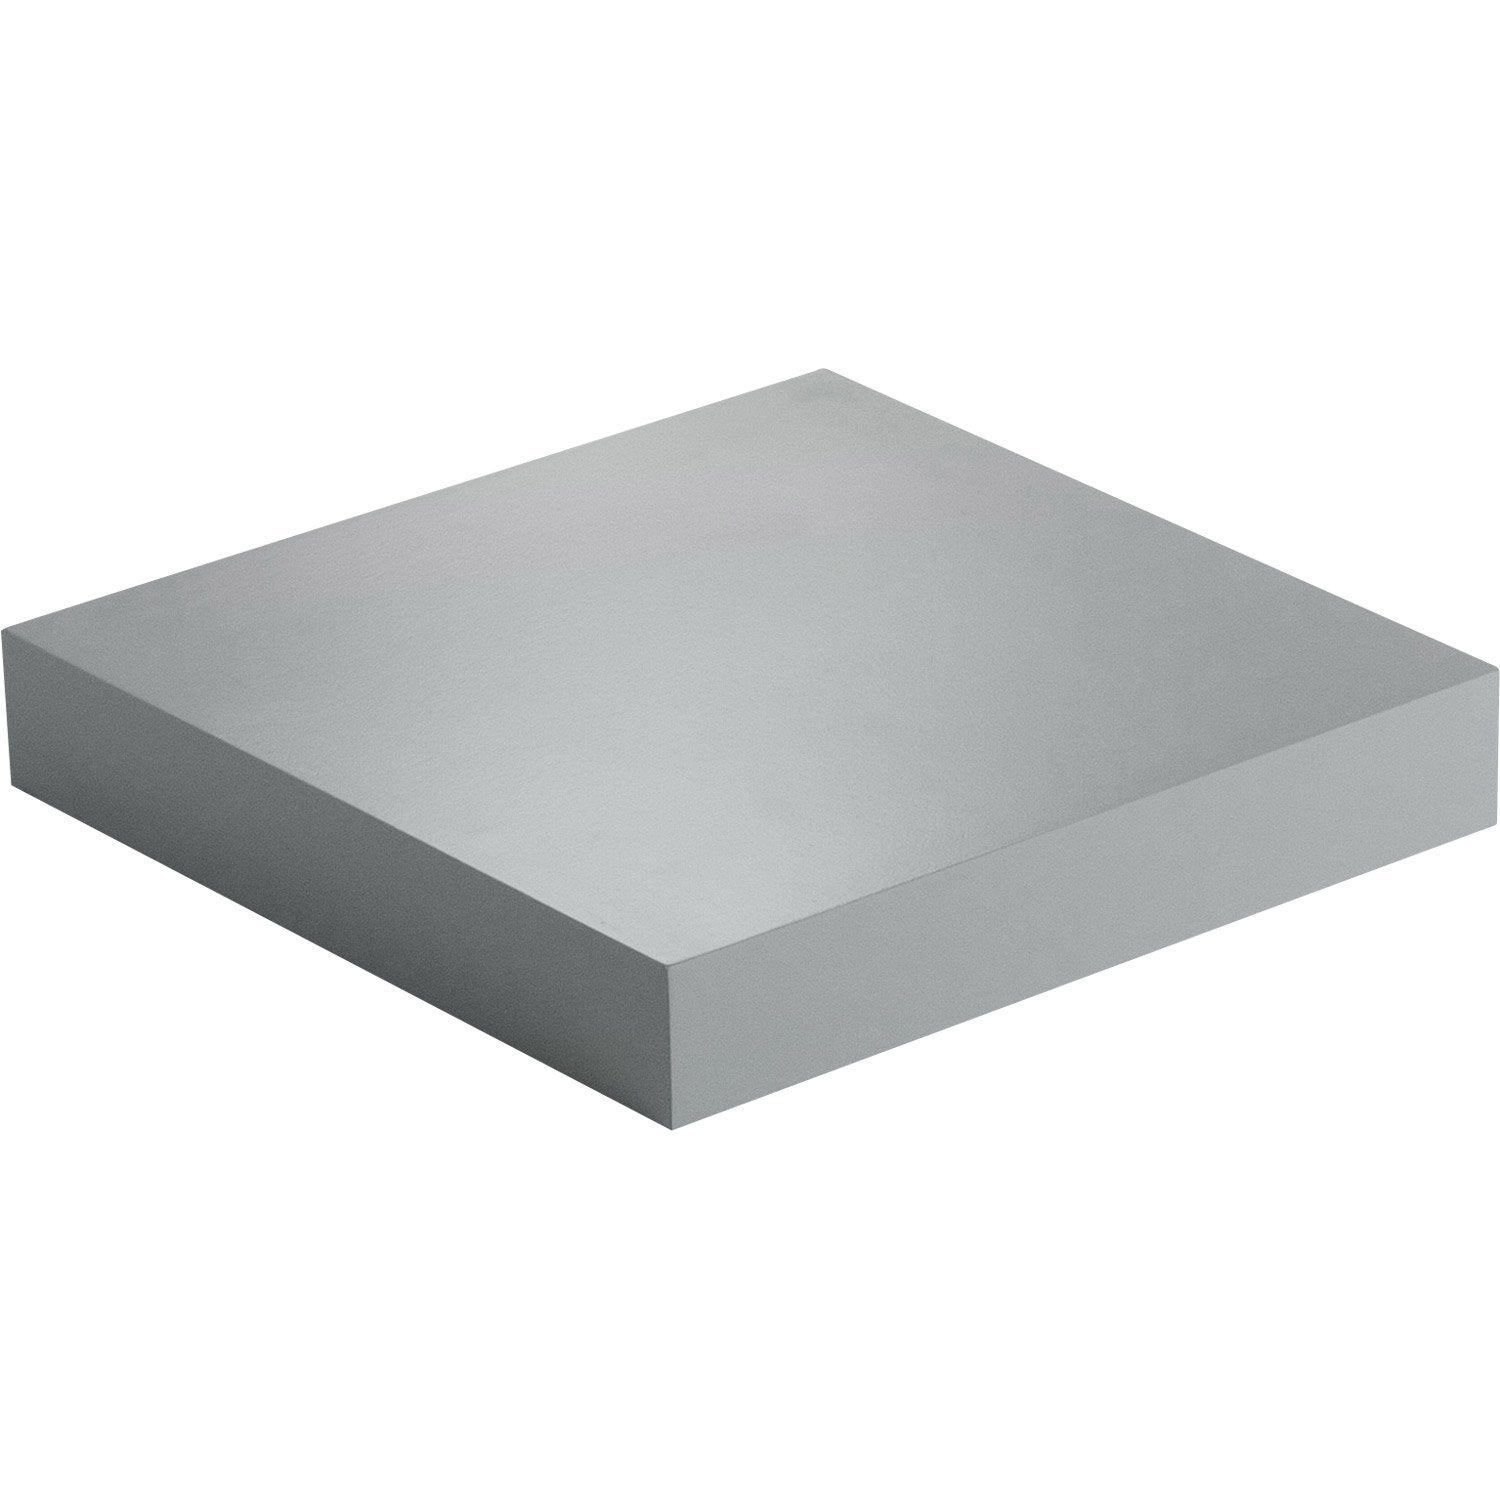 Etag re murale gris color spaceo l 23 5 x p 23 5 cm p for Petite tablette